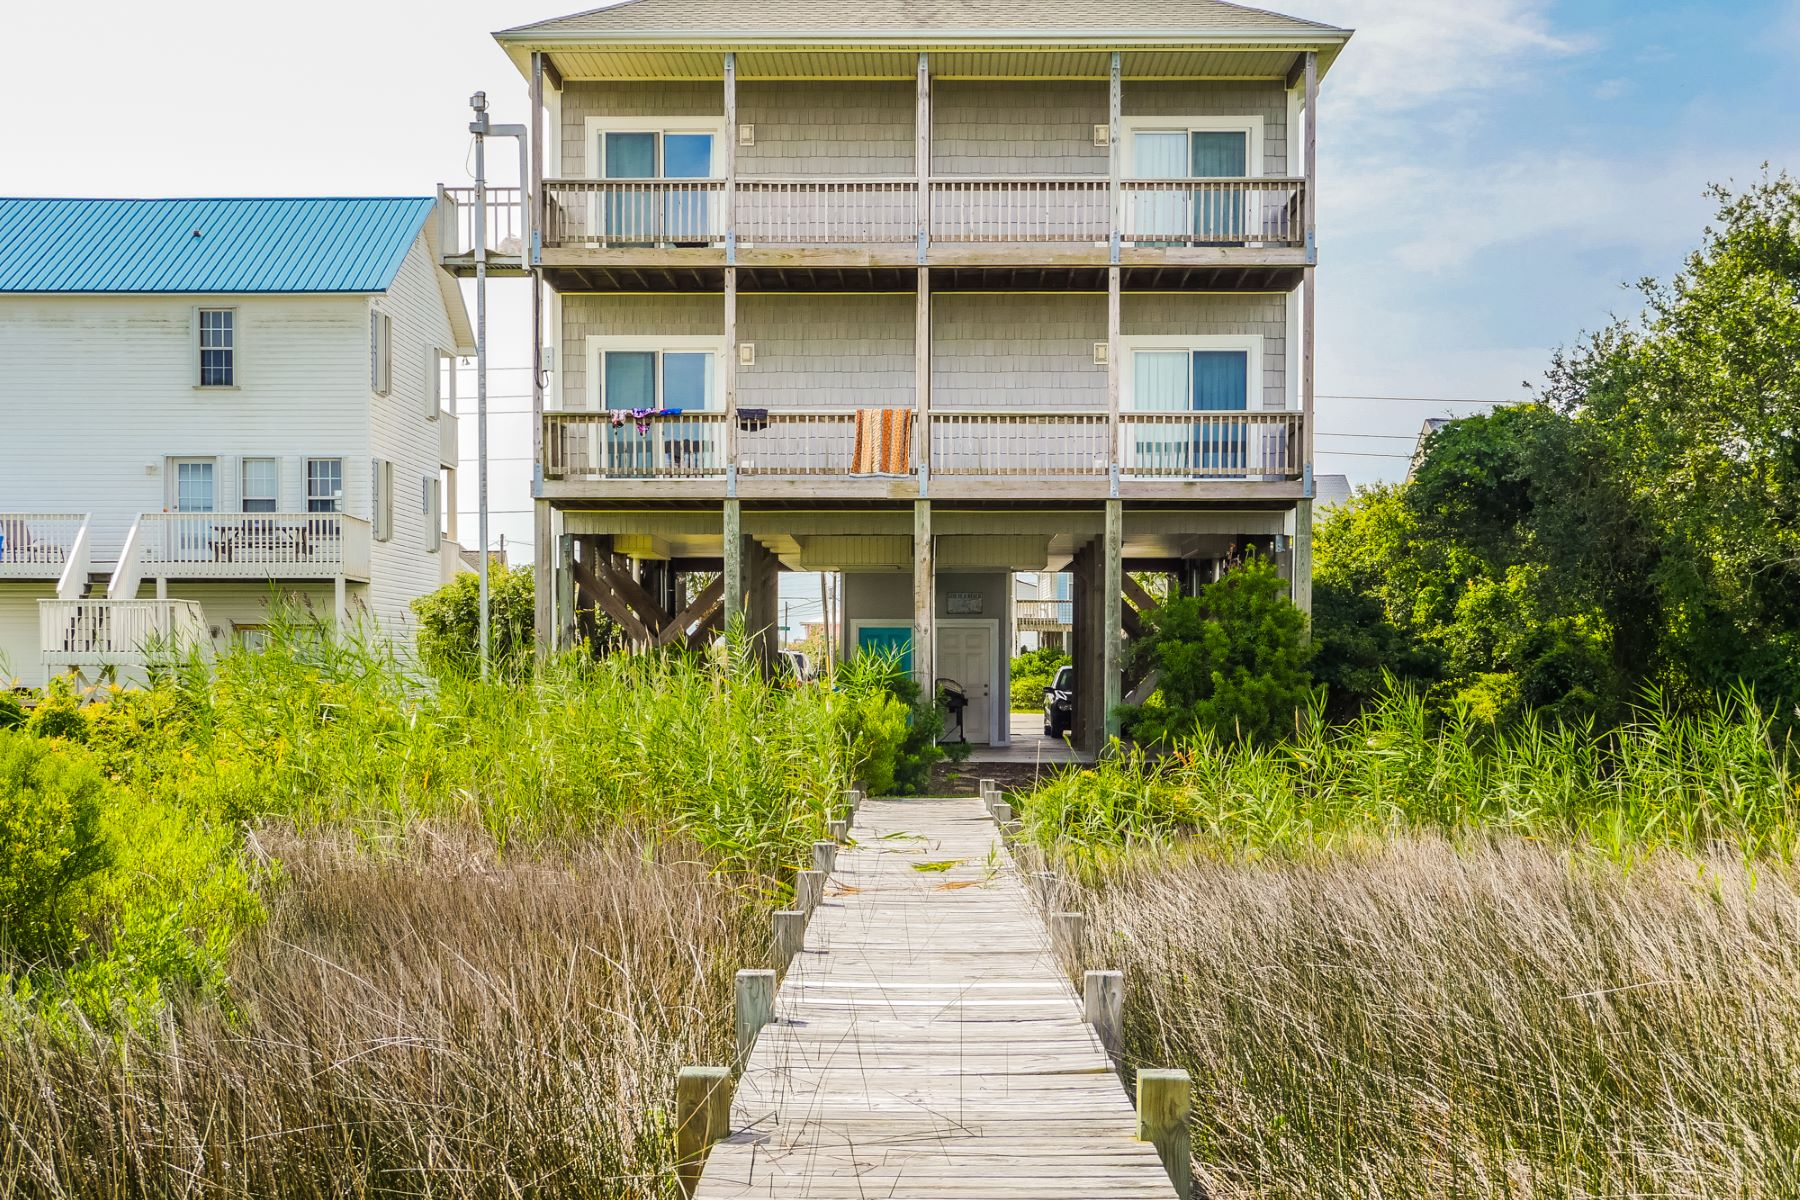 Moradia em banda para Venda às A Serene Beach Home with Impeccable Views 1227A N New River Drive Surf City, Carolina Do Norte, 28445 Estados Unidos